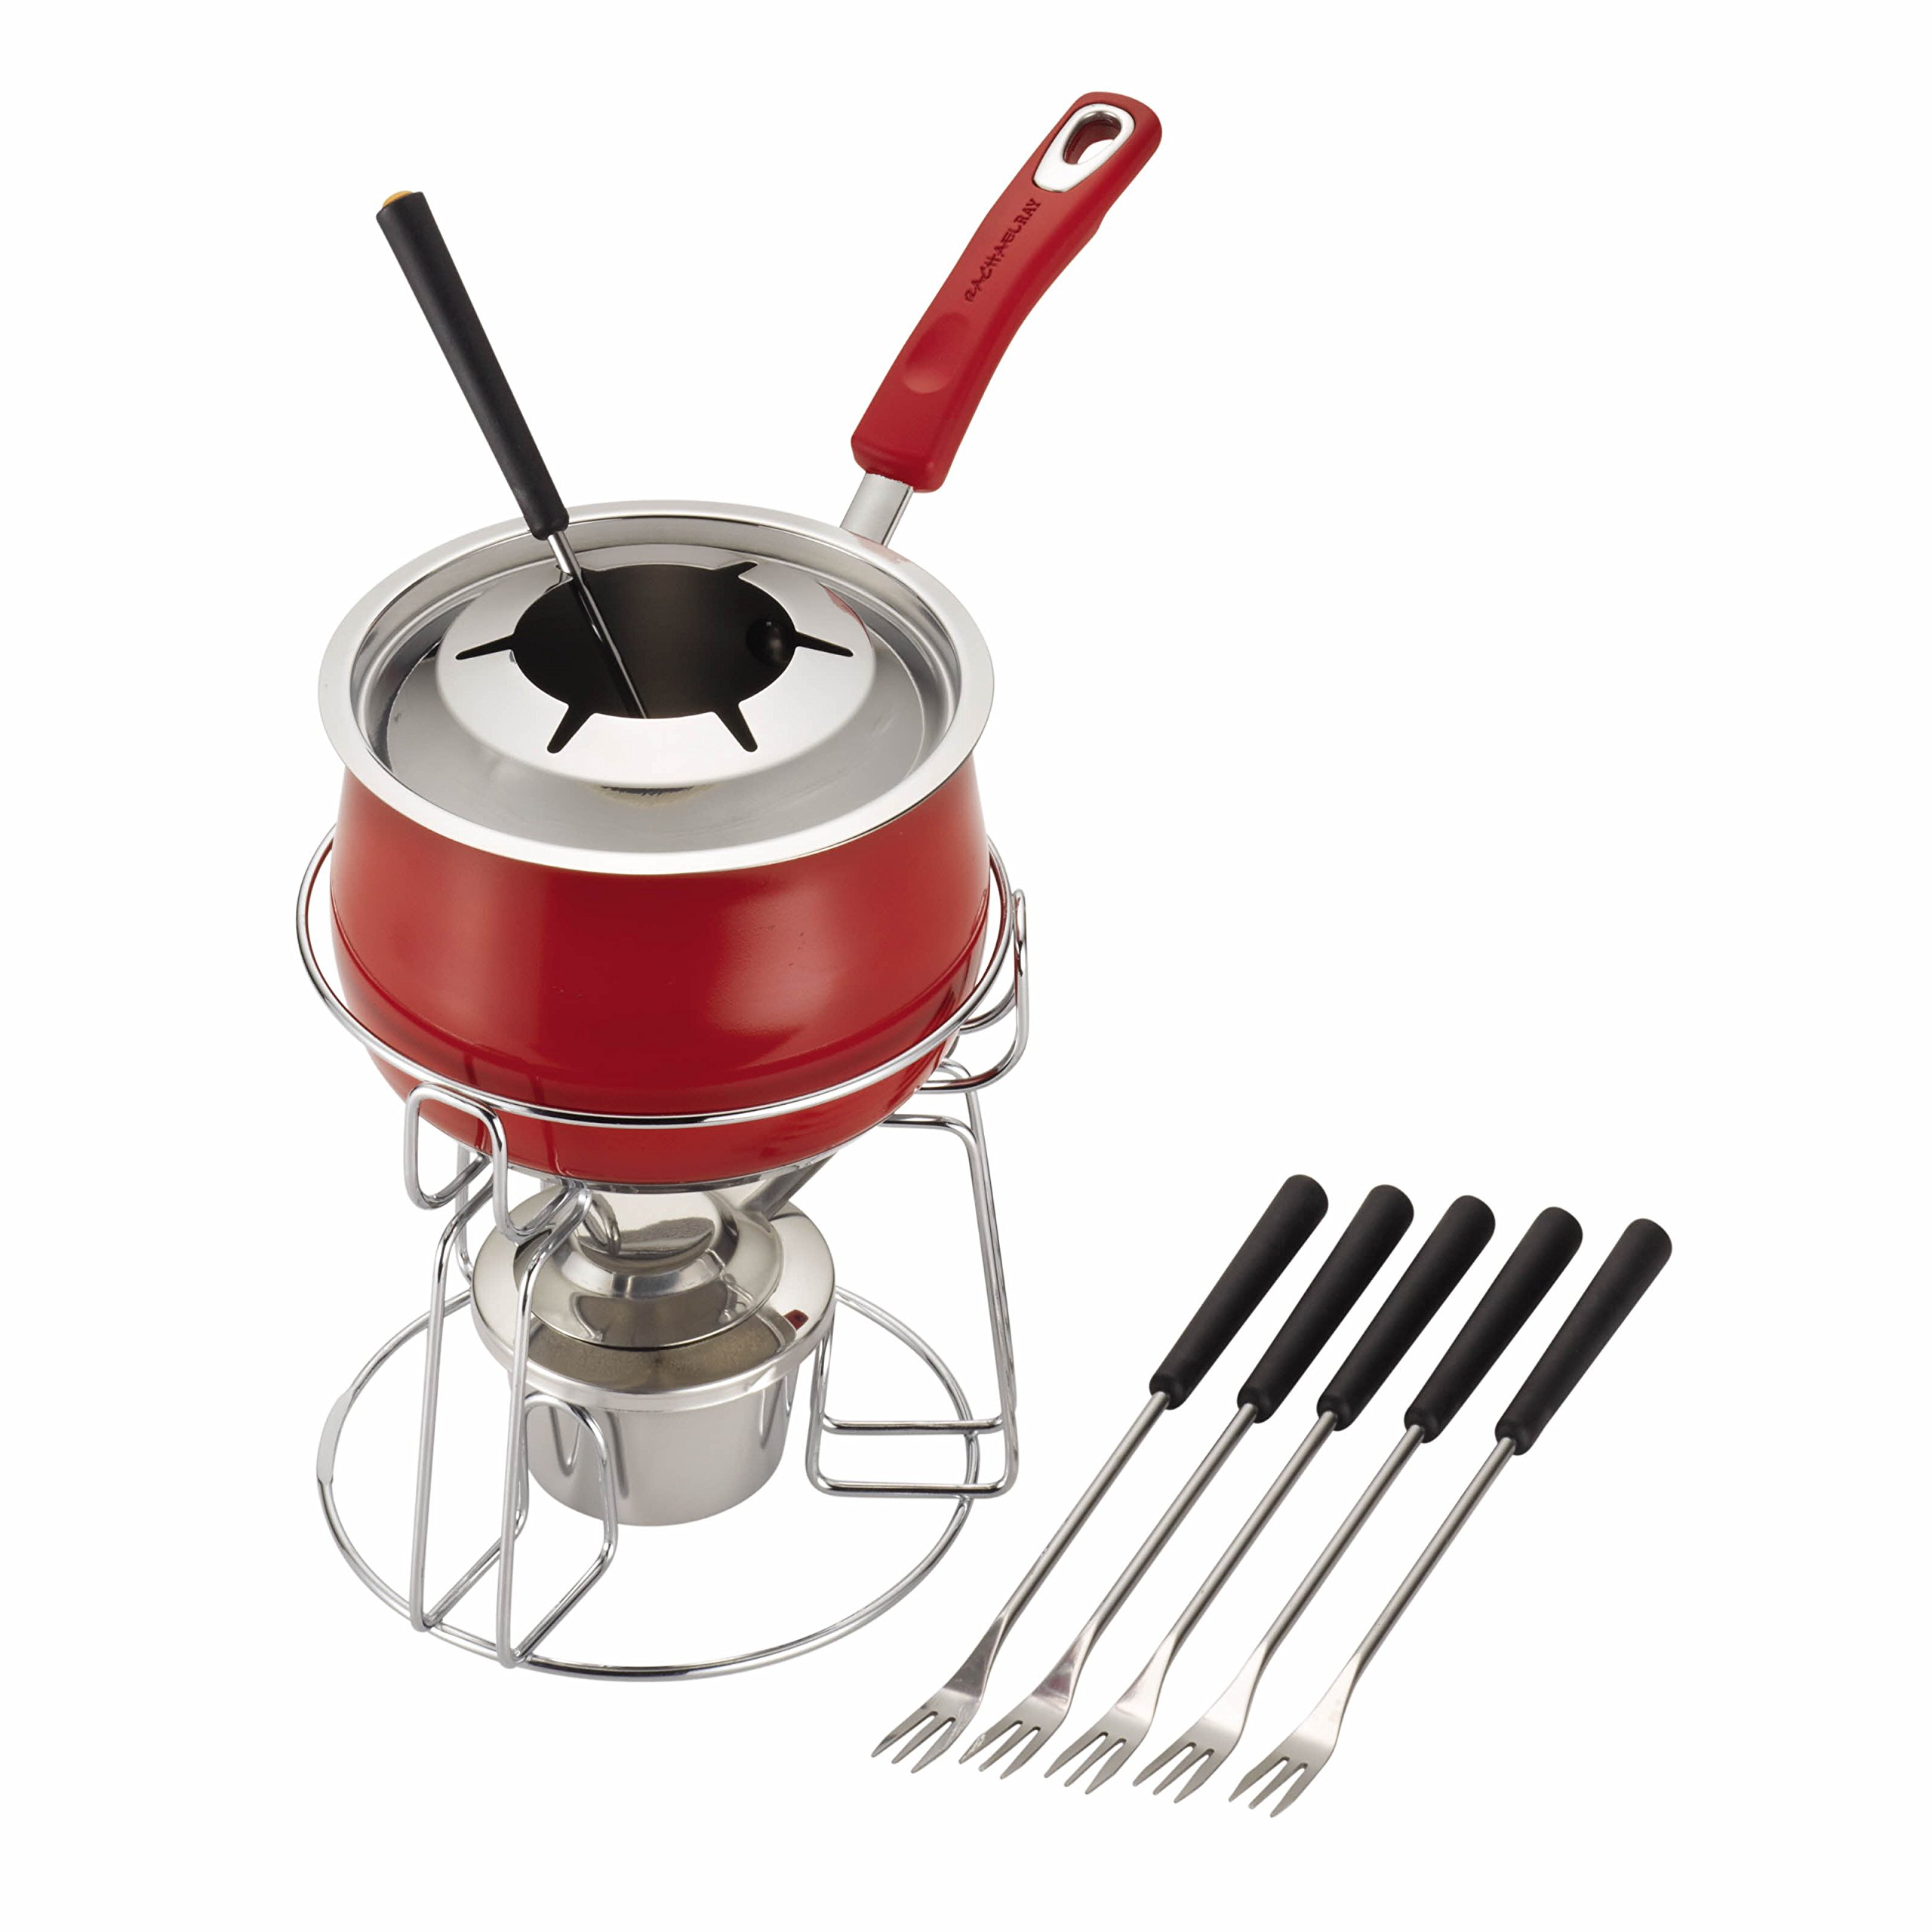 Rachael Ray Stainless Steel II 2-Quart Fondue Set, Red